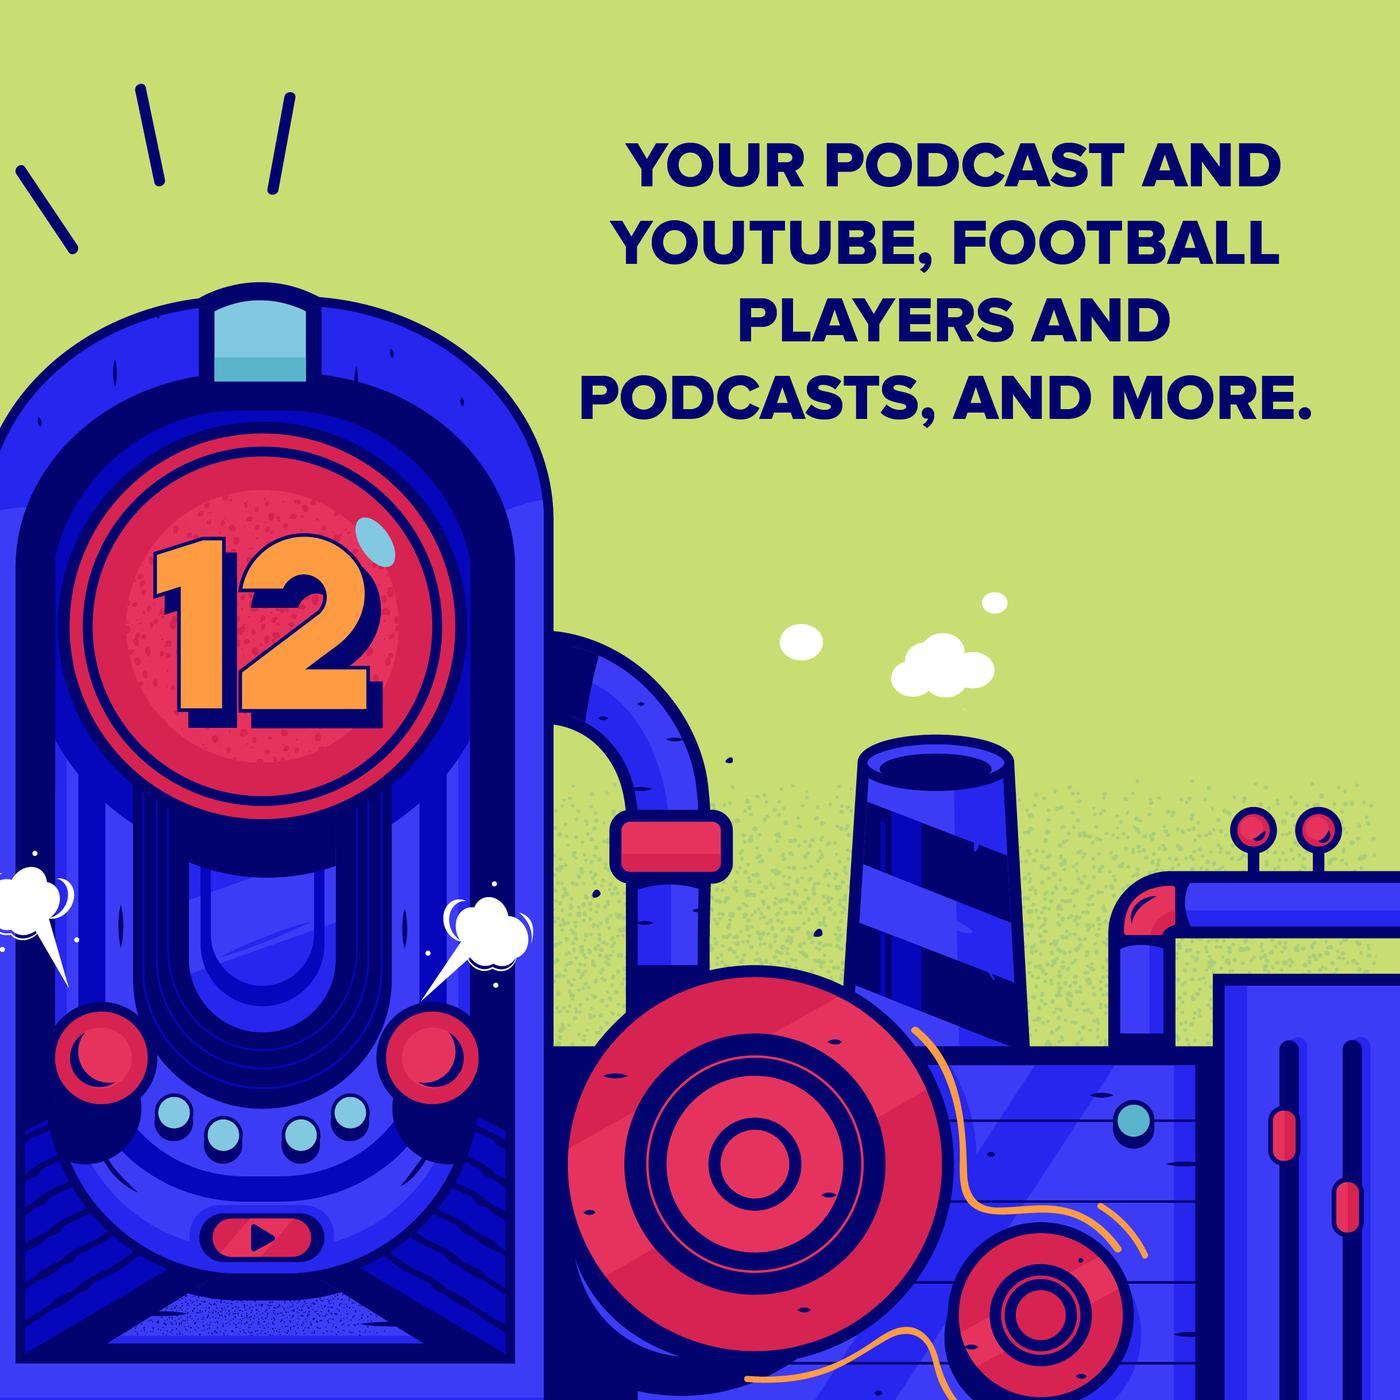 Episode 12 (TWIP) - Your Podcast and YouTube, Football Players and Podcasts, and More.